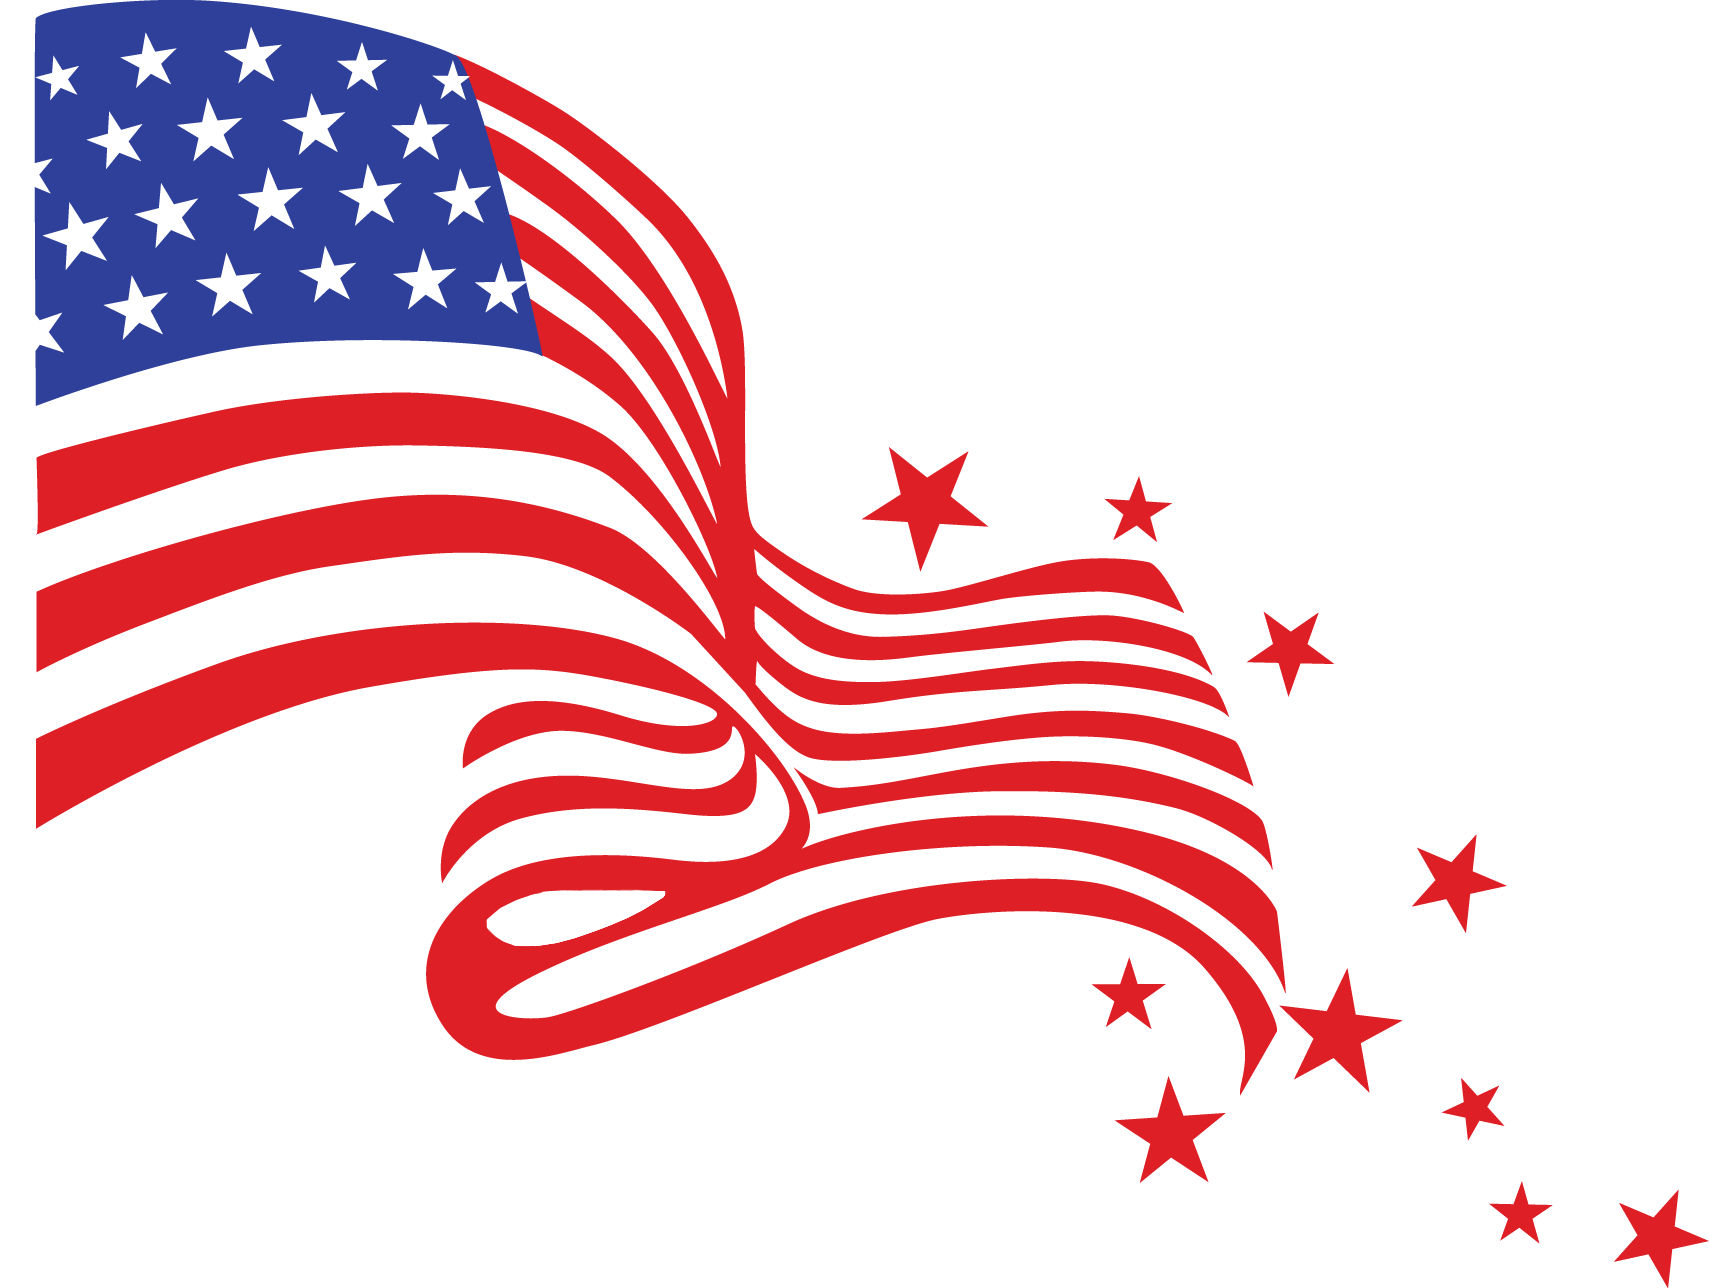 Ice clipart 4th july. American flag transparent google